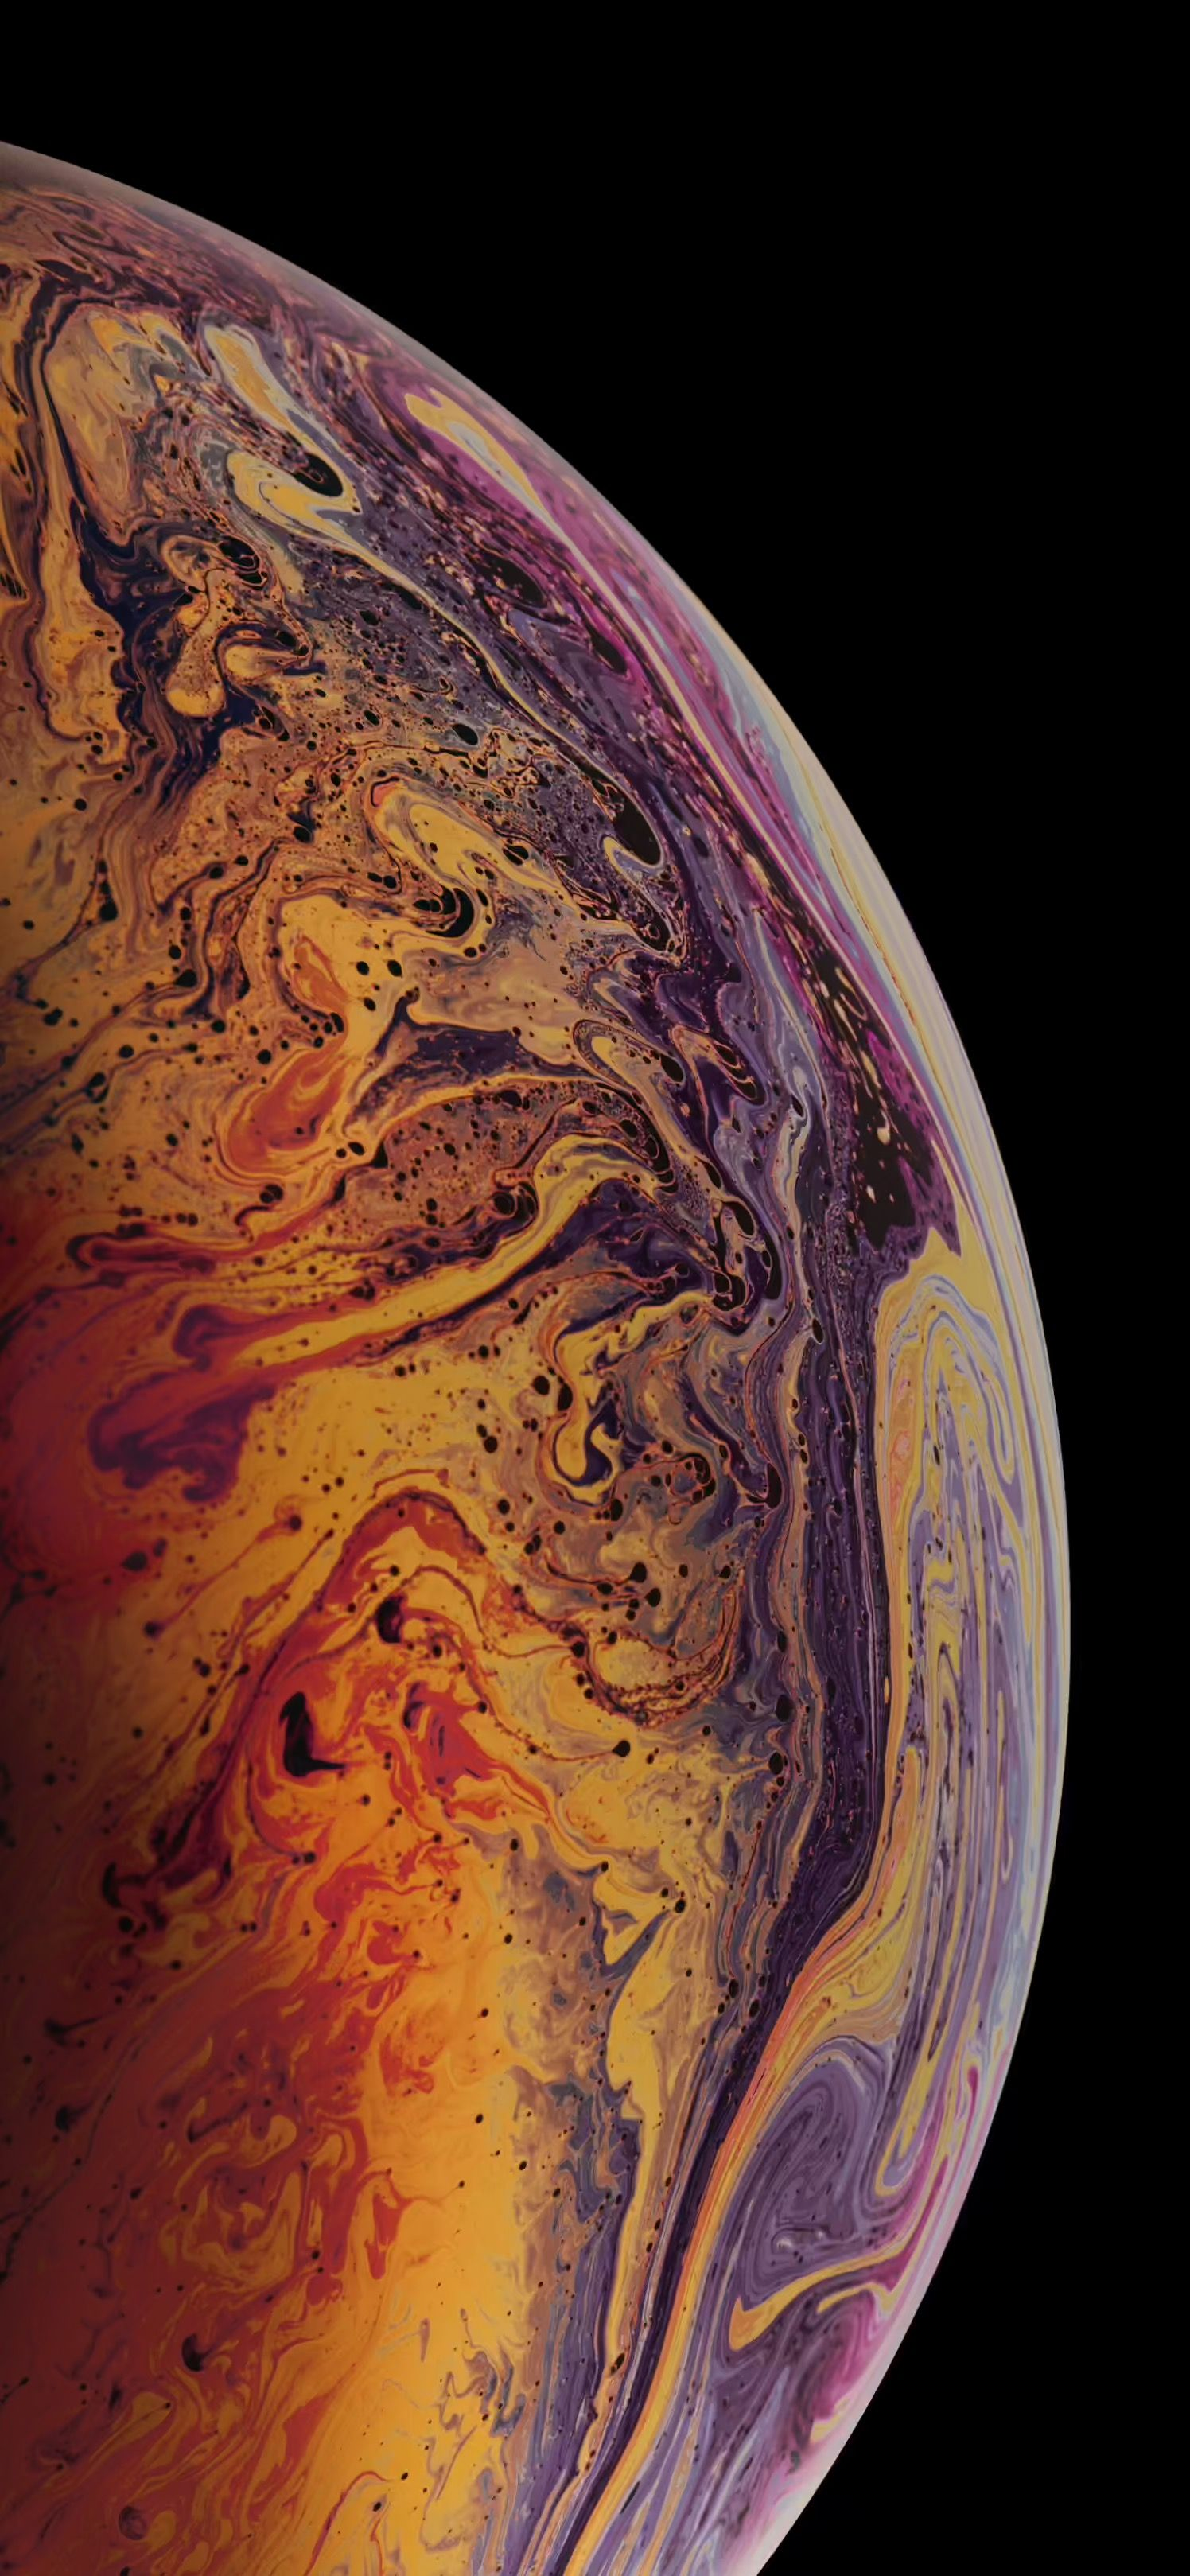 Download the 3 iPhone XS Max Wallpapers of Bubbles OSXDaily 1496x3238